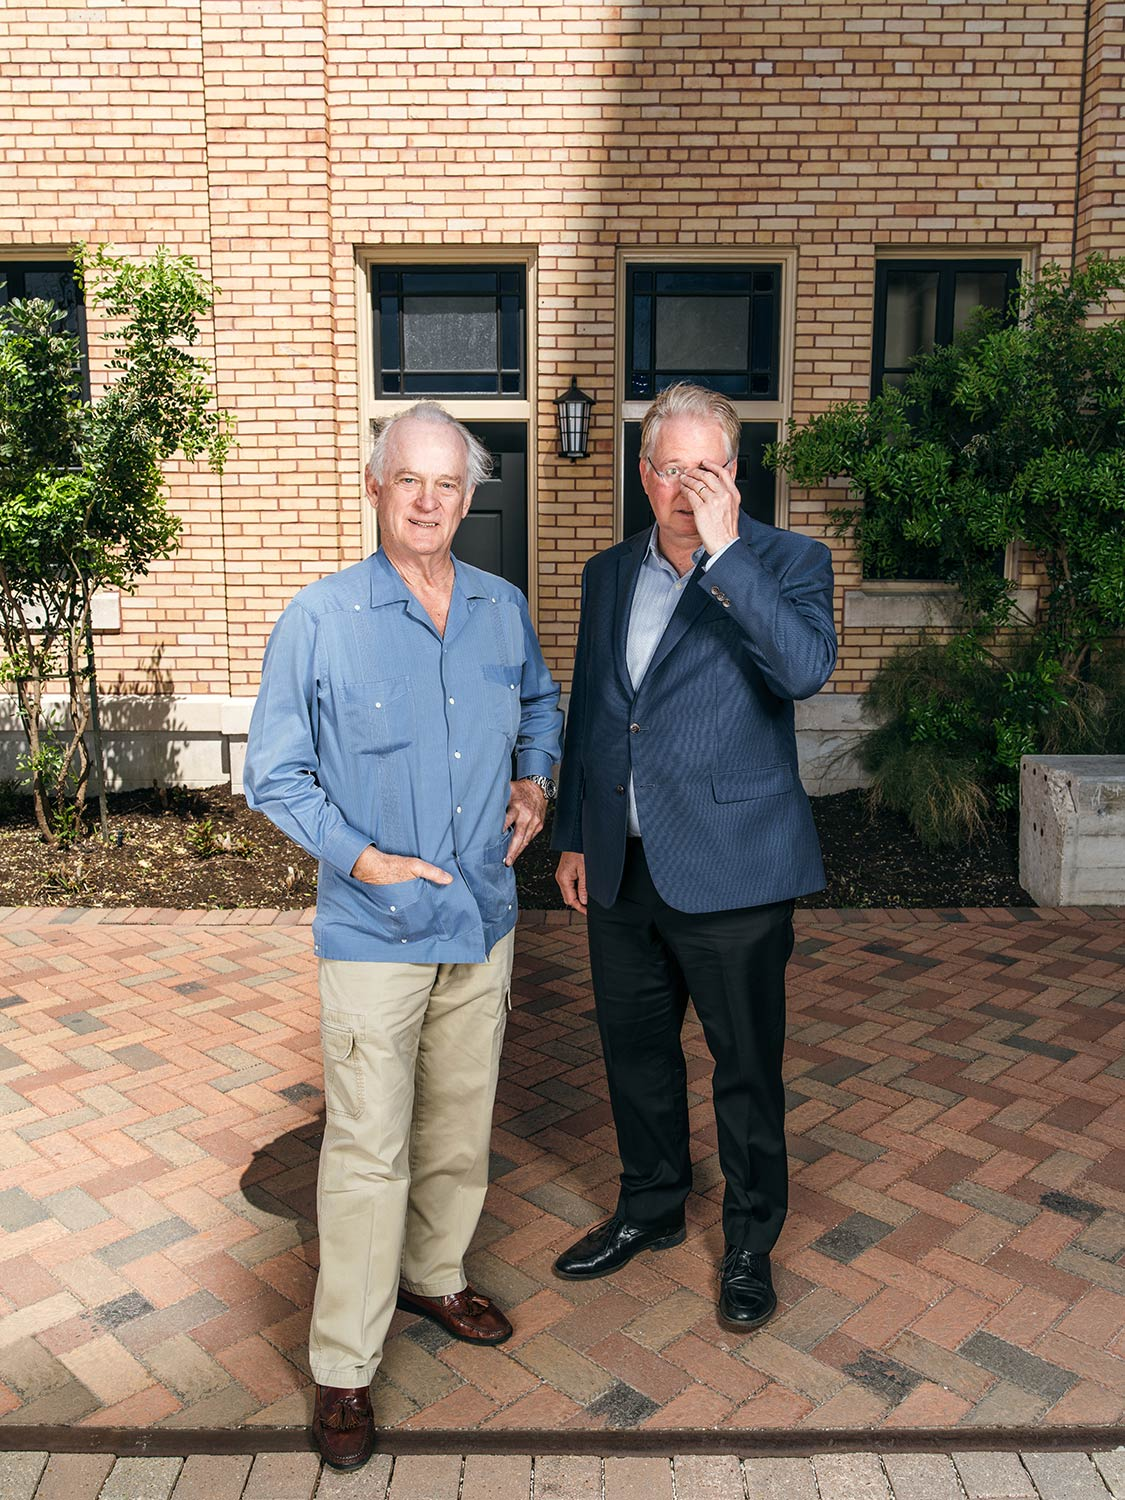 Kit Golsbury and Graham Weston photographed at The Pearl in San Antonio TX by portrait photographer Josh Huskin for Texas Monthly.